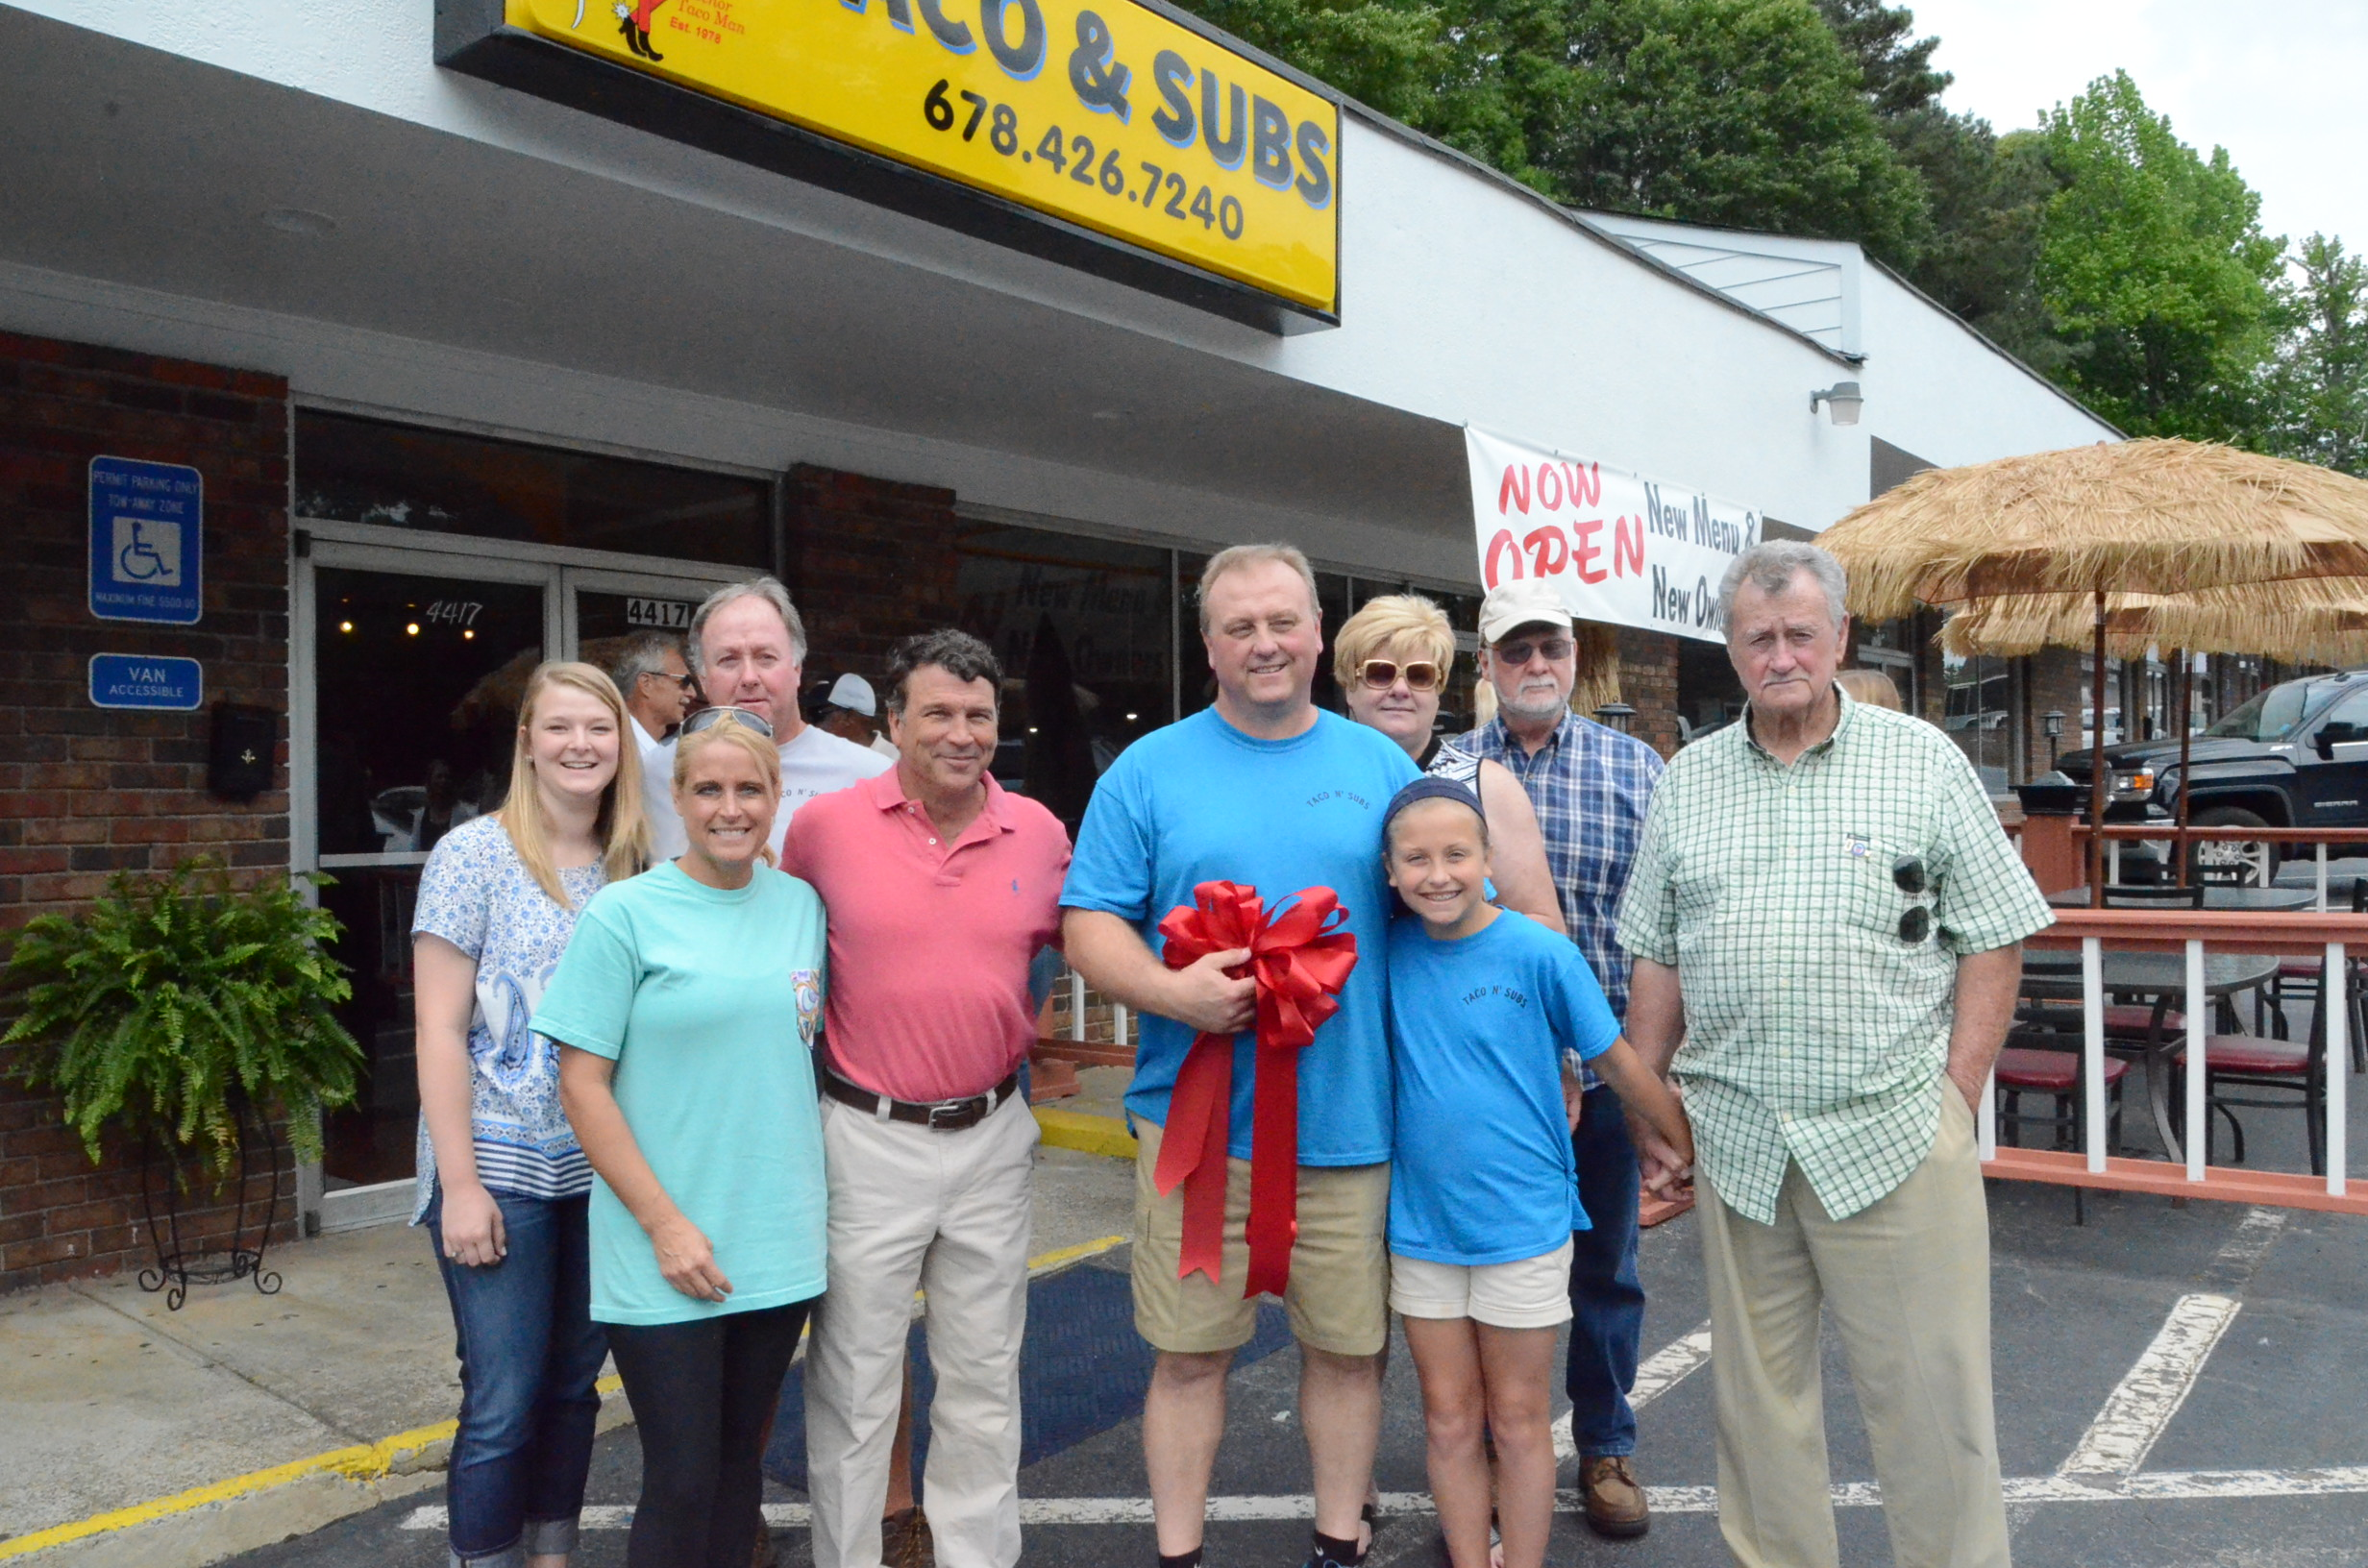 Ribbon Cutting for Tacos N' Subs 1